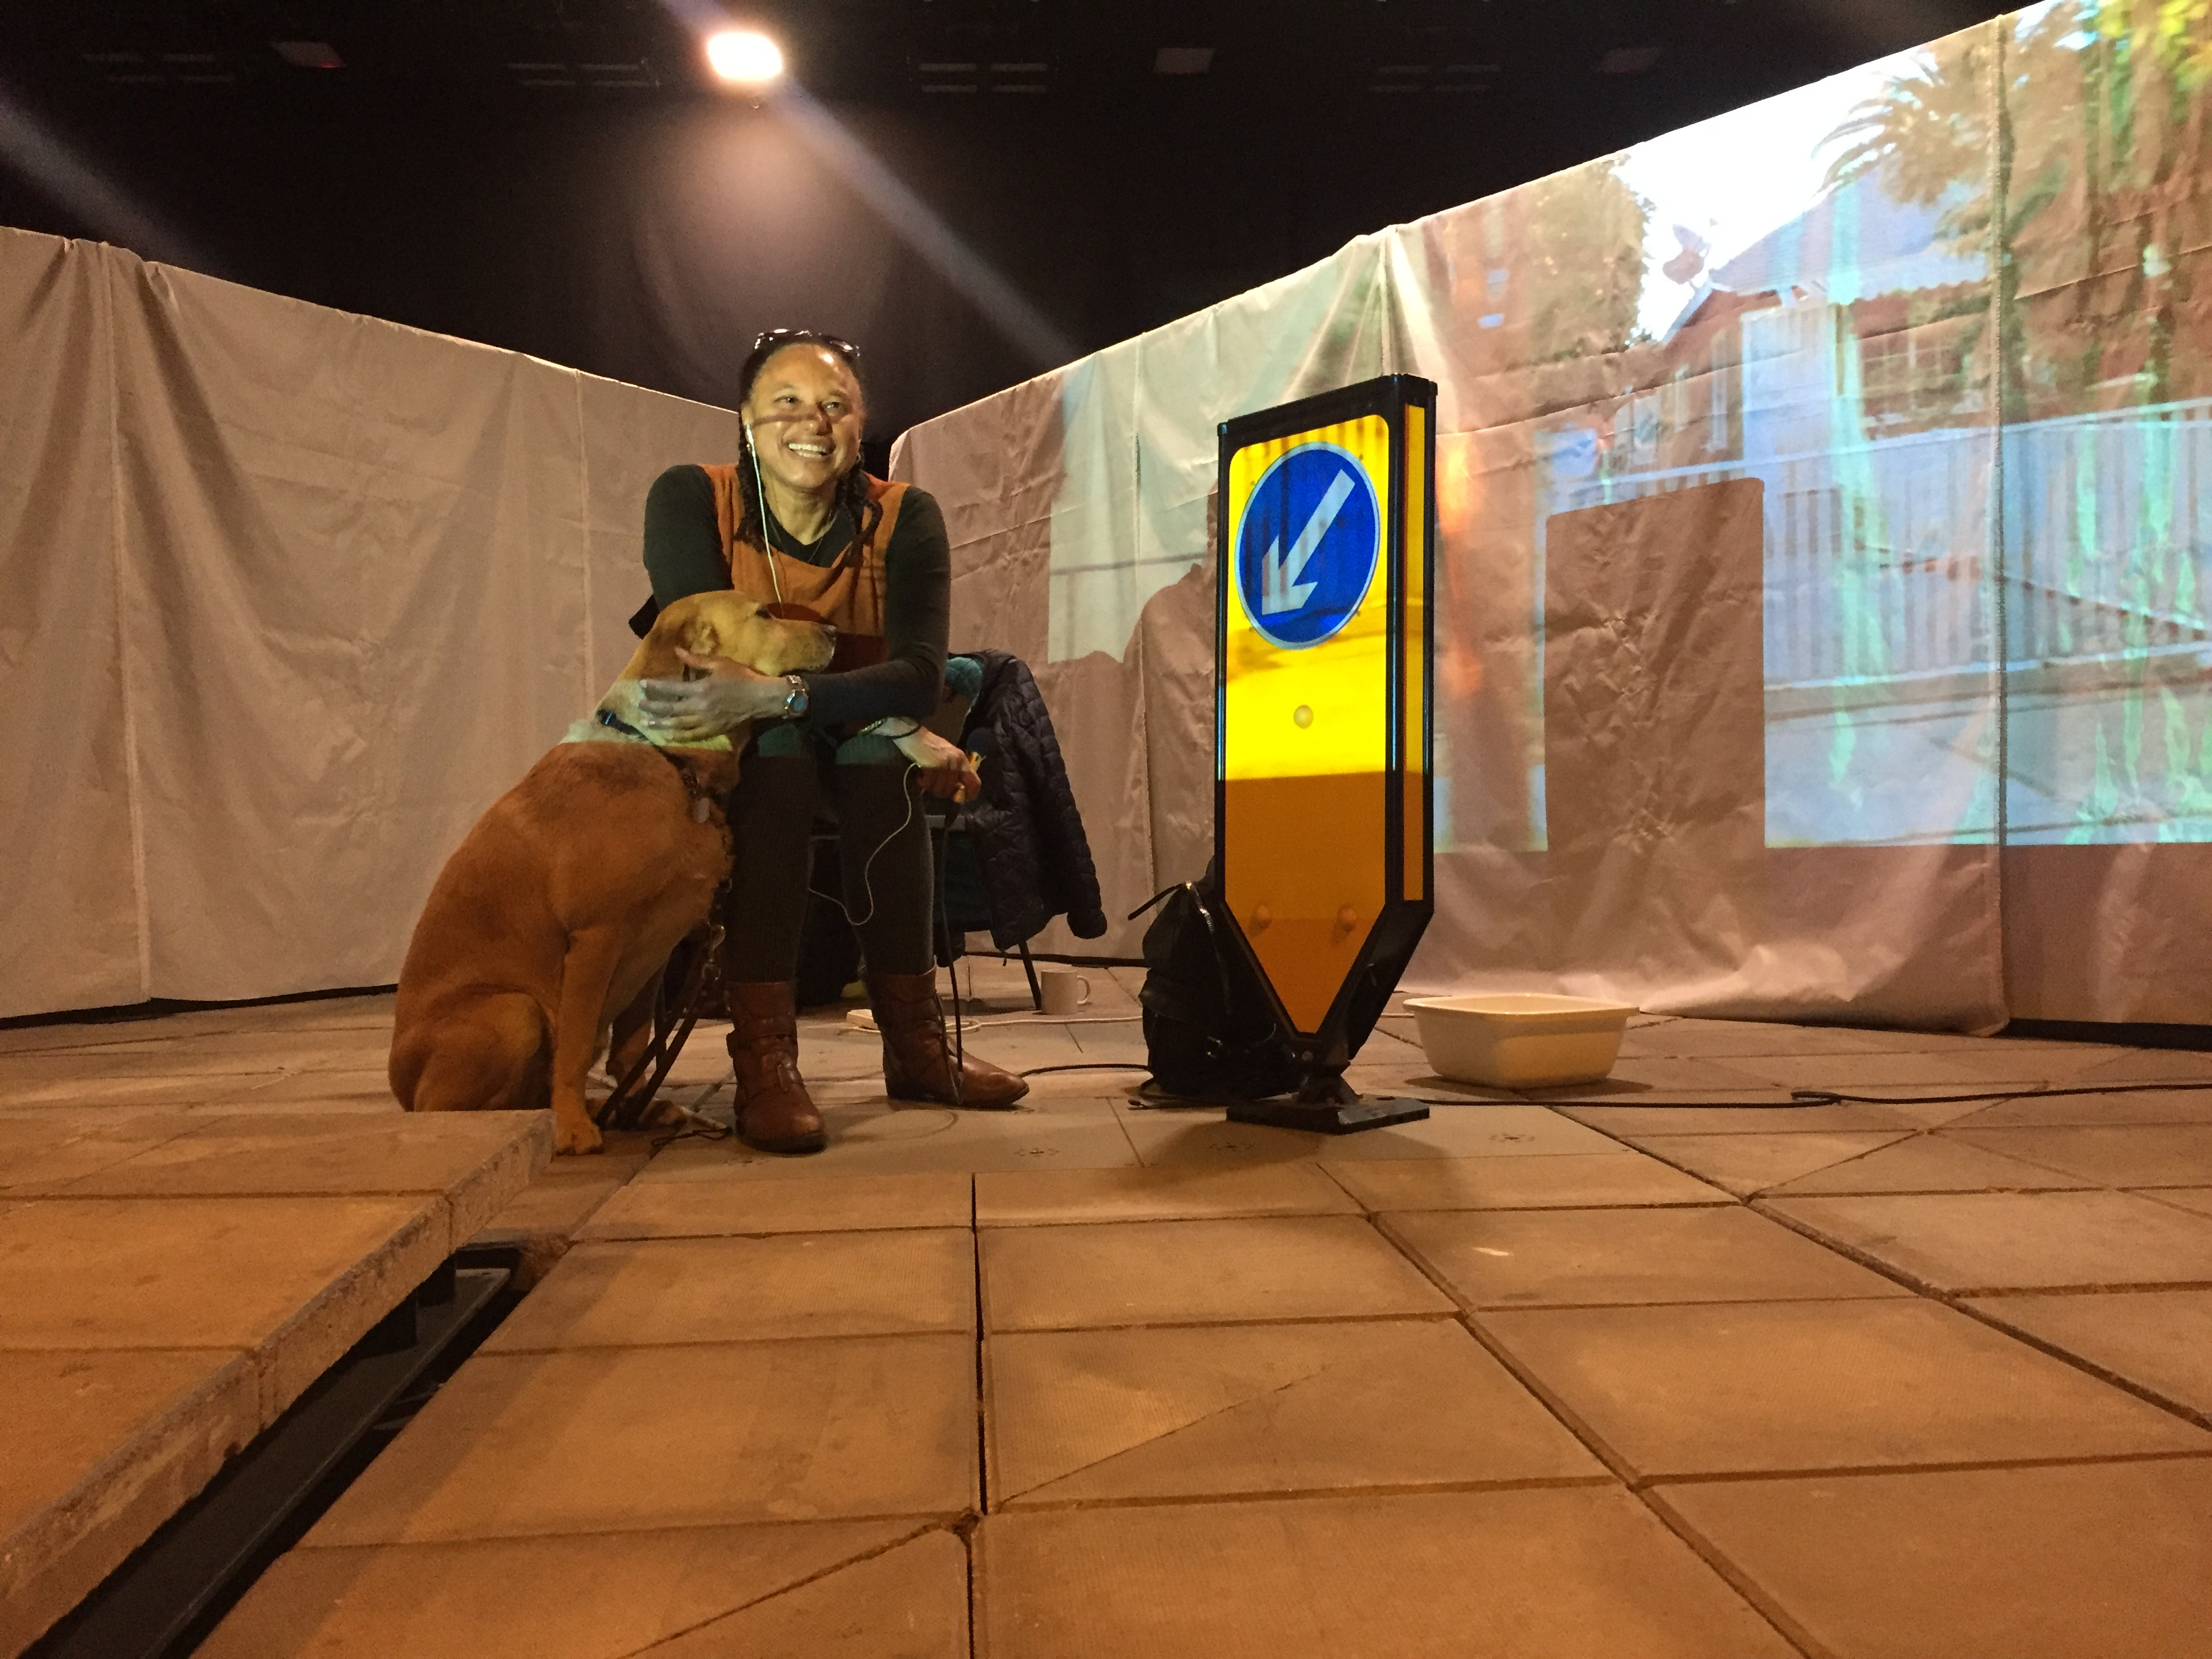 Maria sits between two screens smiling at camera and holding a mic. Her guide dog Bella and a road sign stand nearby